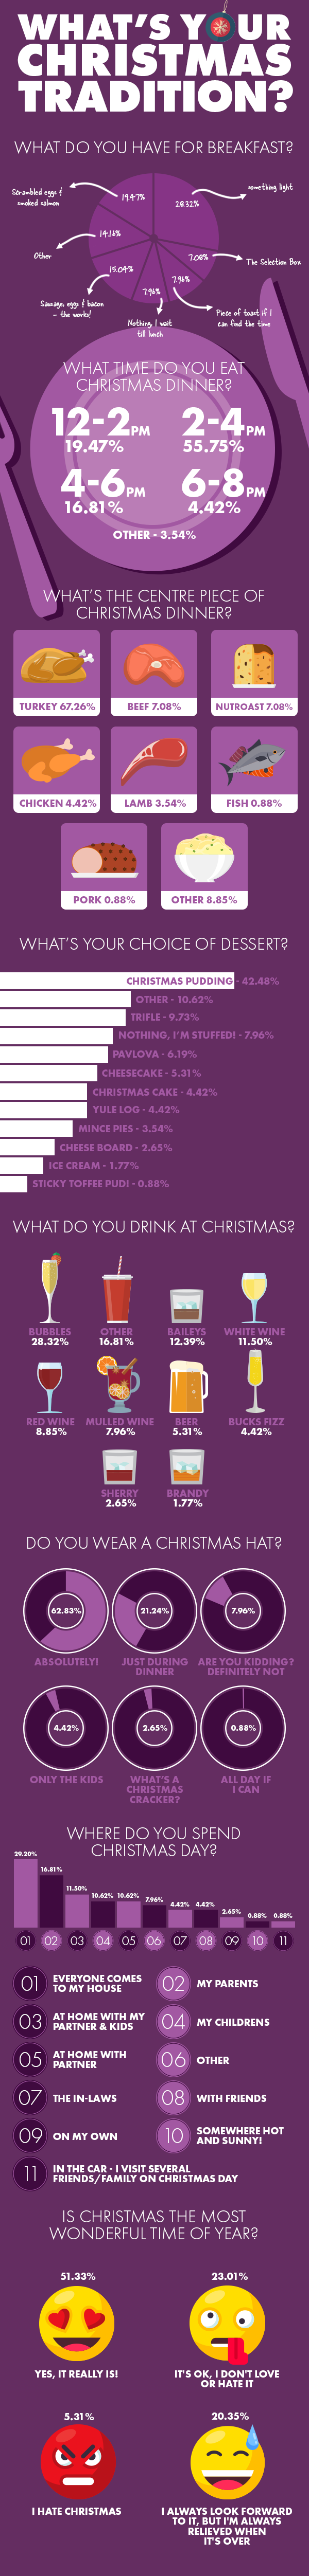 Linens_Christmas_Traditions_Infographic v.2